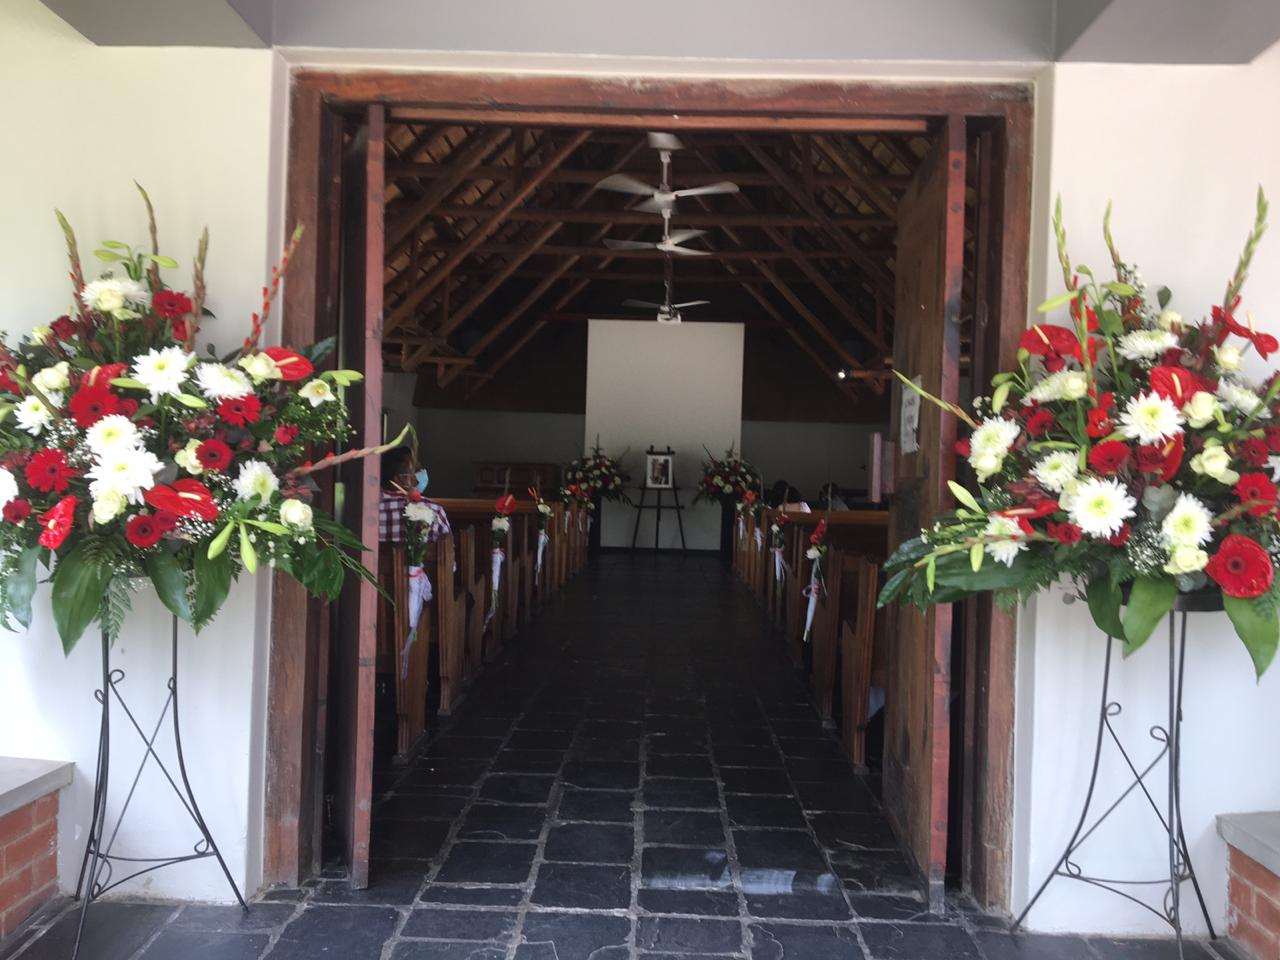 Chapel arrangement with pew decorations with red and white flowers. Please call for a quote.